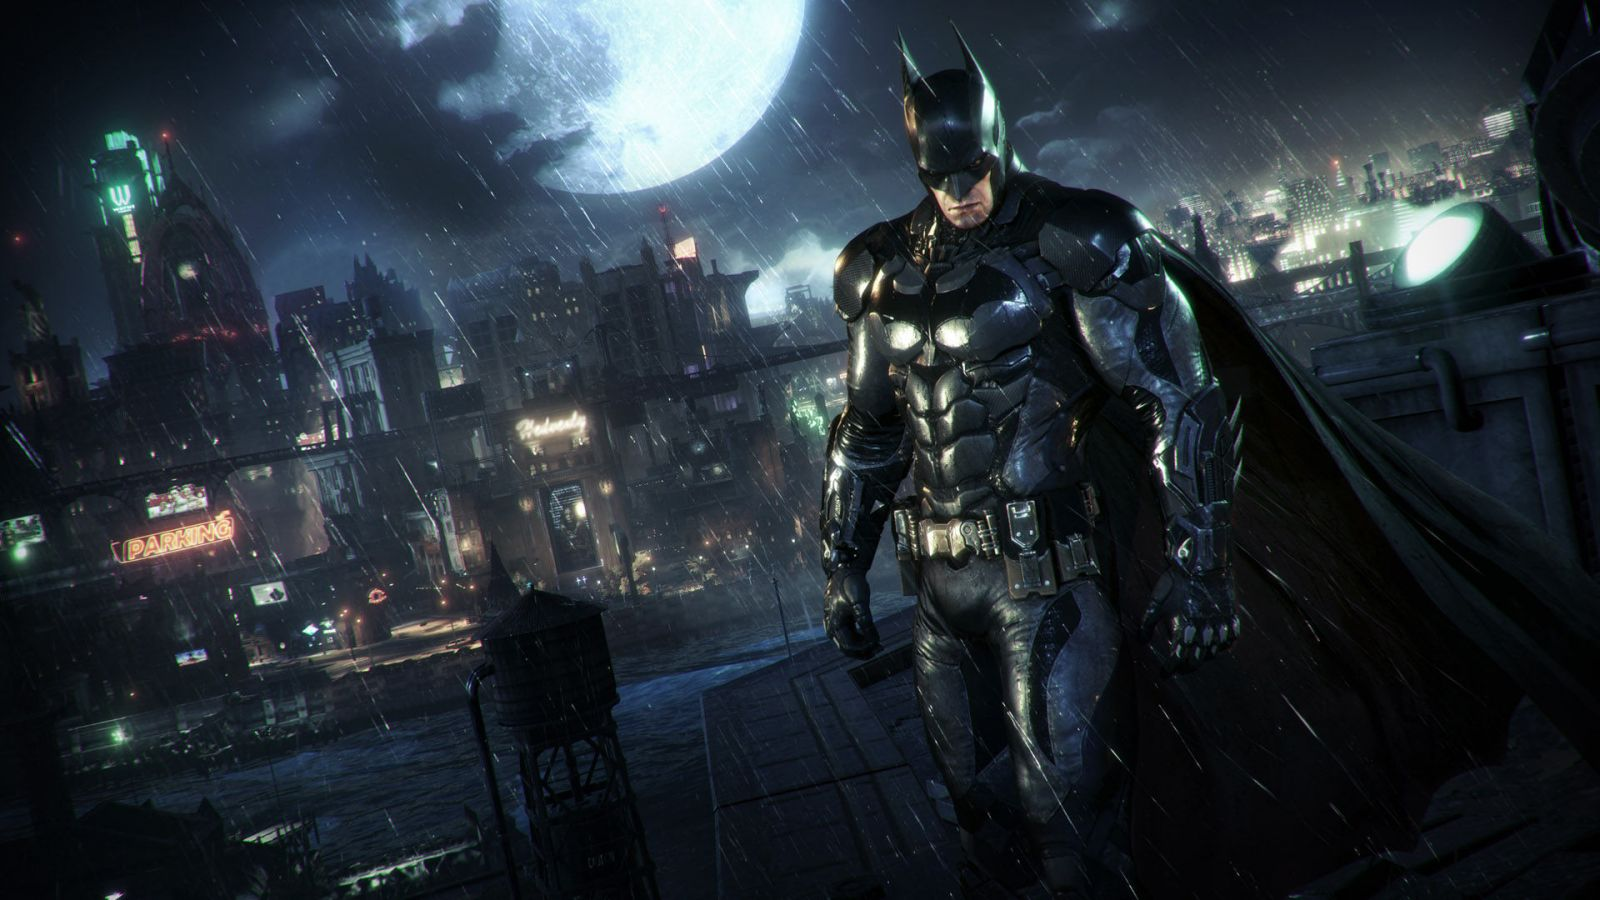 Batman Arkham Knight Limited Edition Announced for Current Gen and PC 1600x900